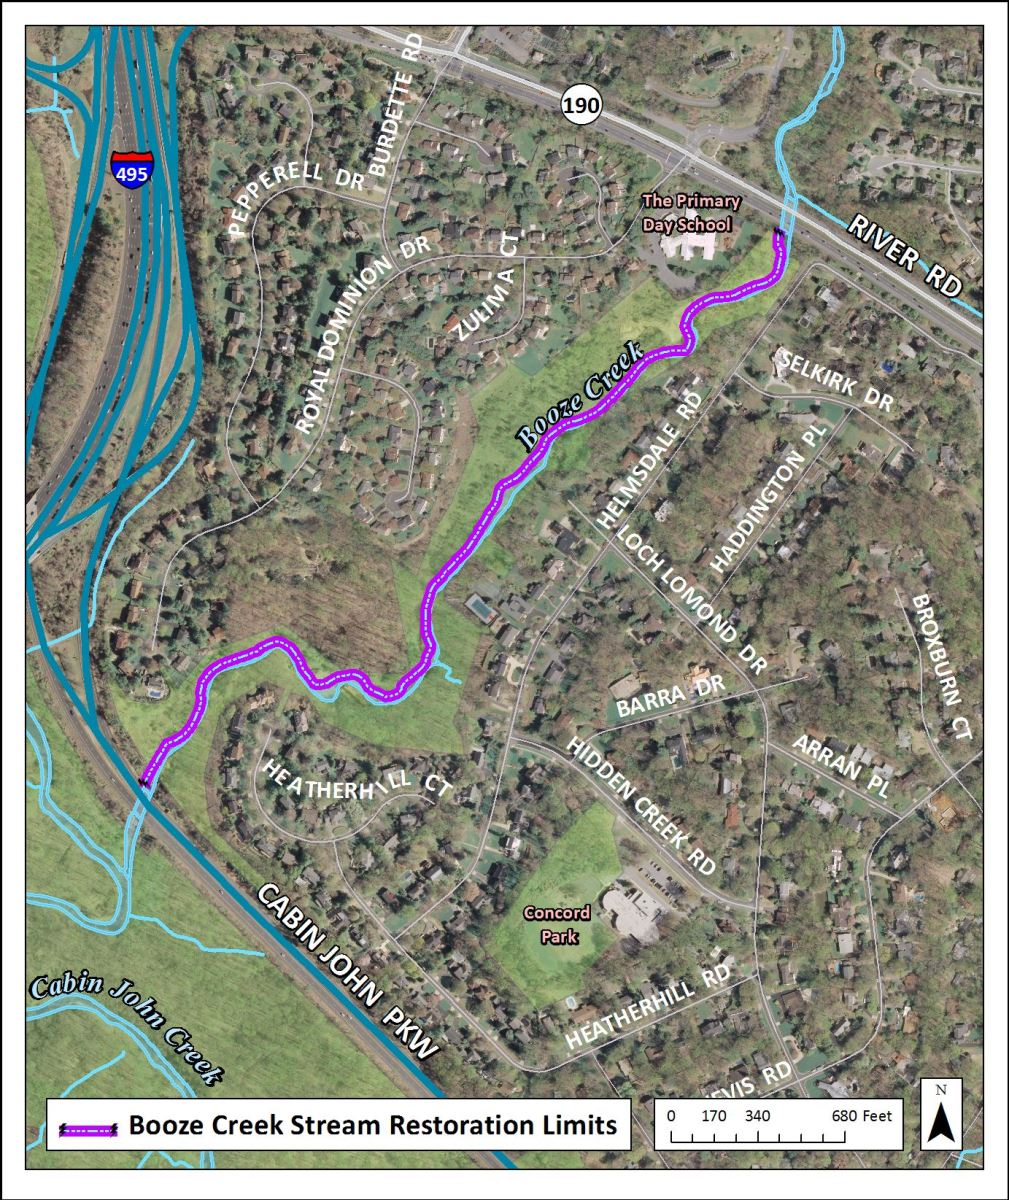 Image of Booze Creek Stream Restoration Area